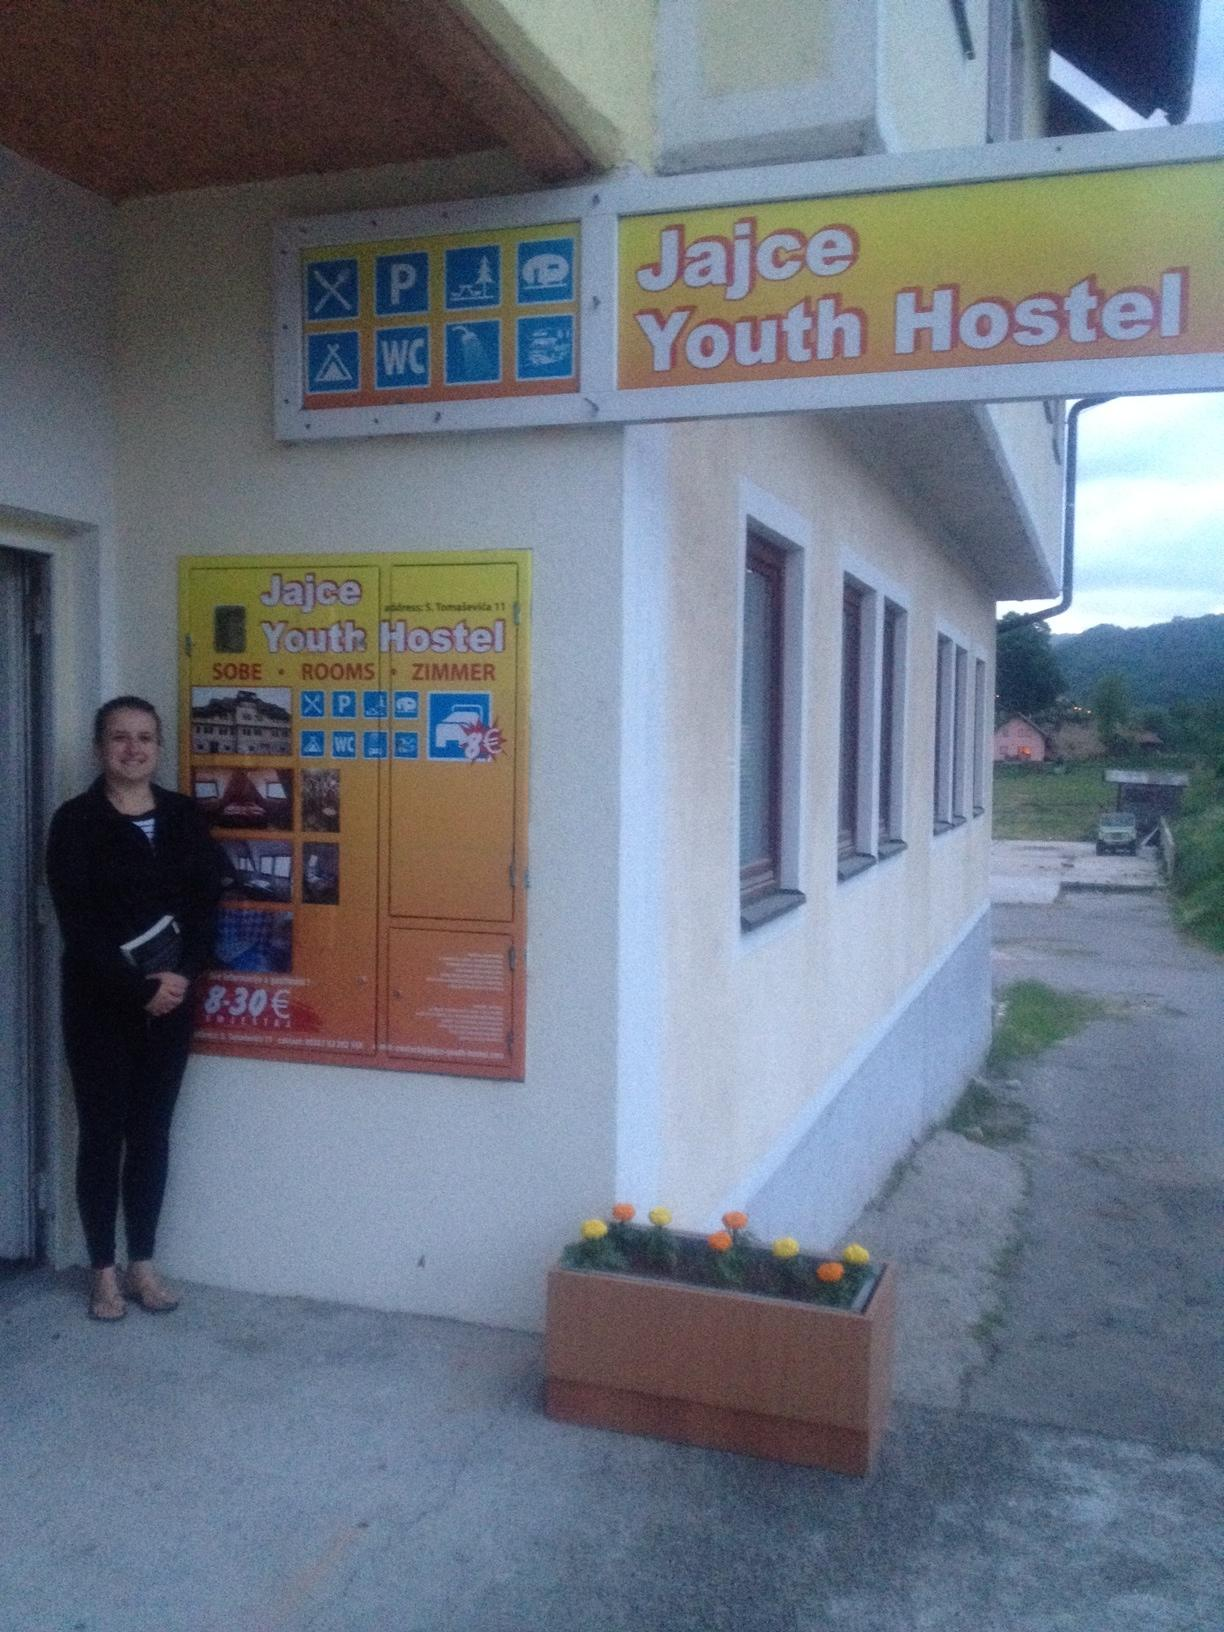 Jajce Youth Hostel